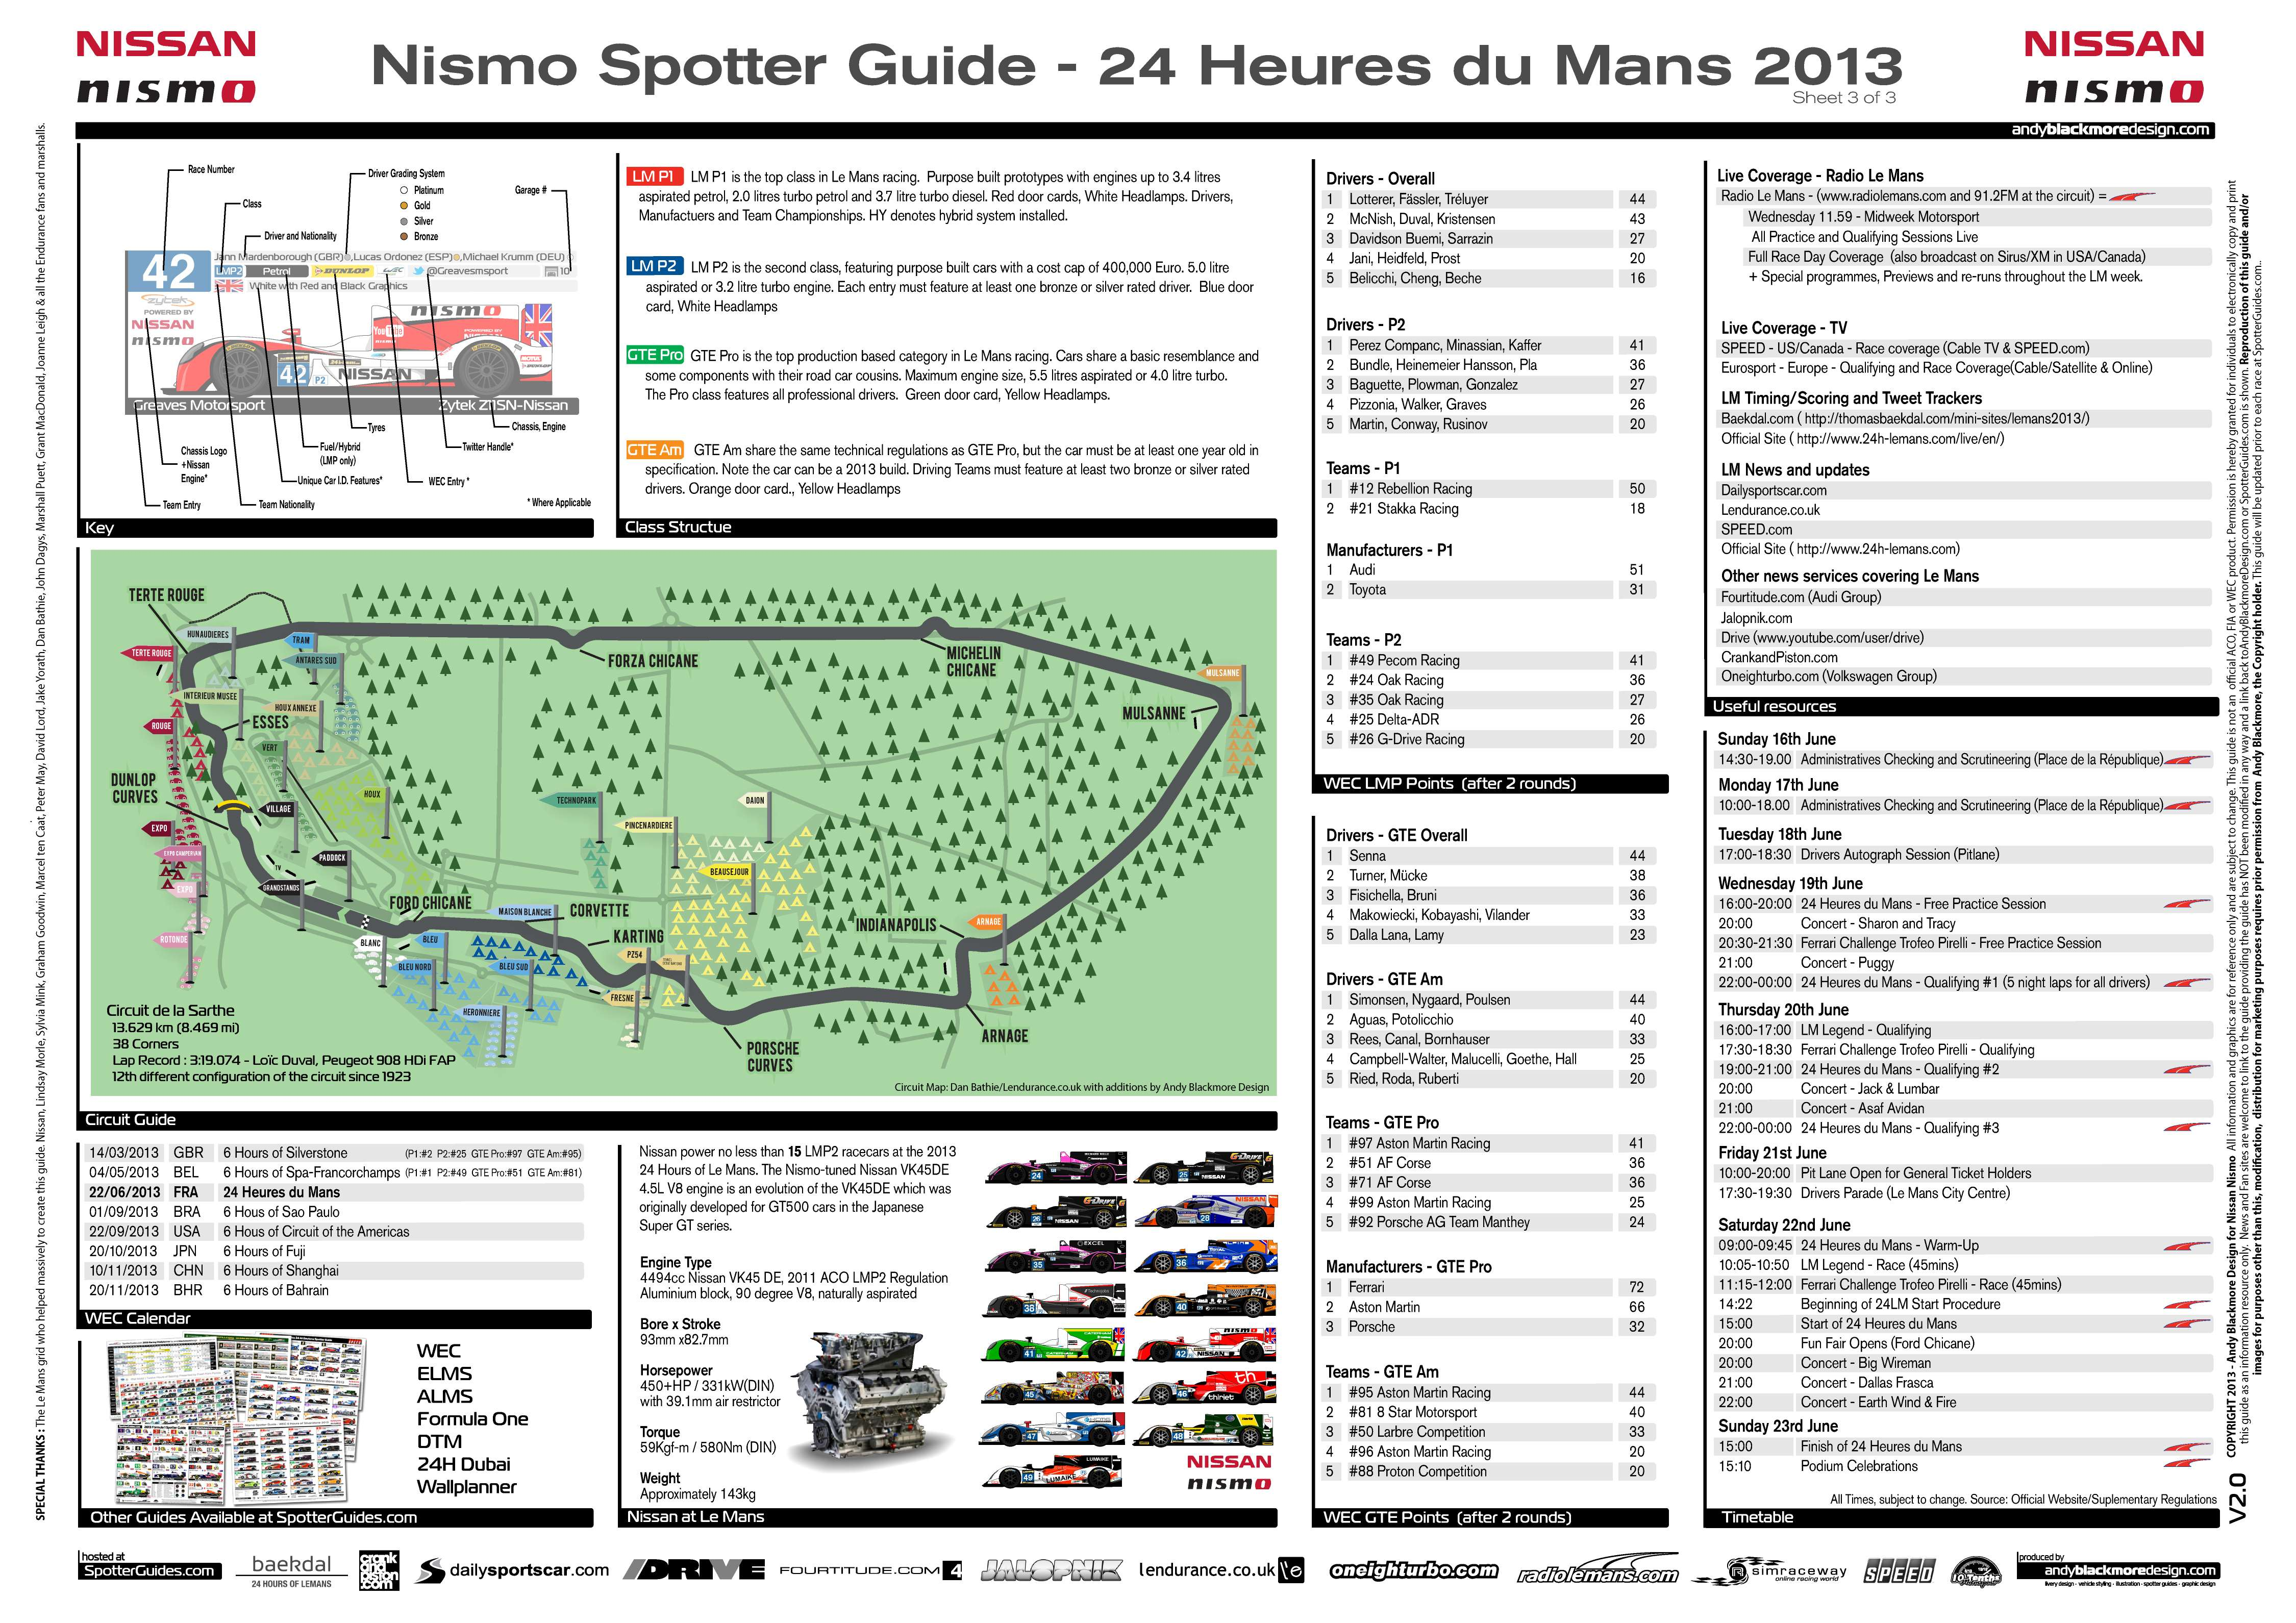 Le Mans 24 Hours 2013 Spotter Guide Classification and Track